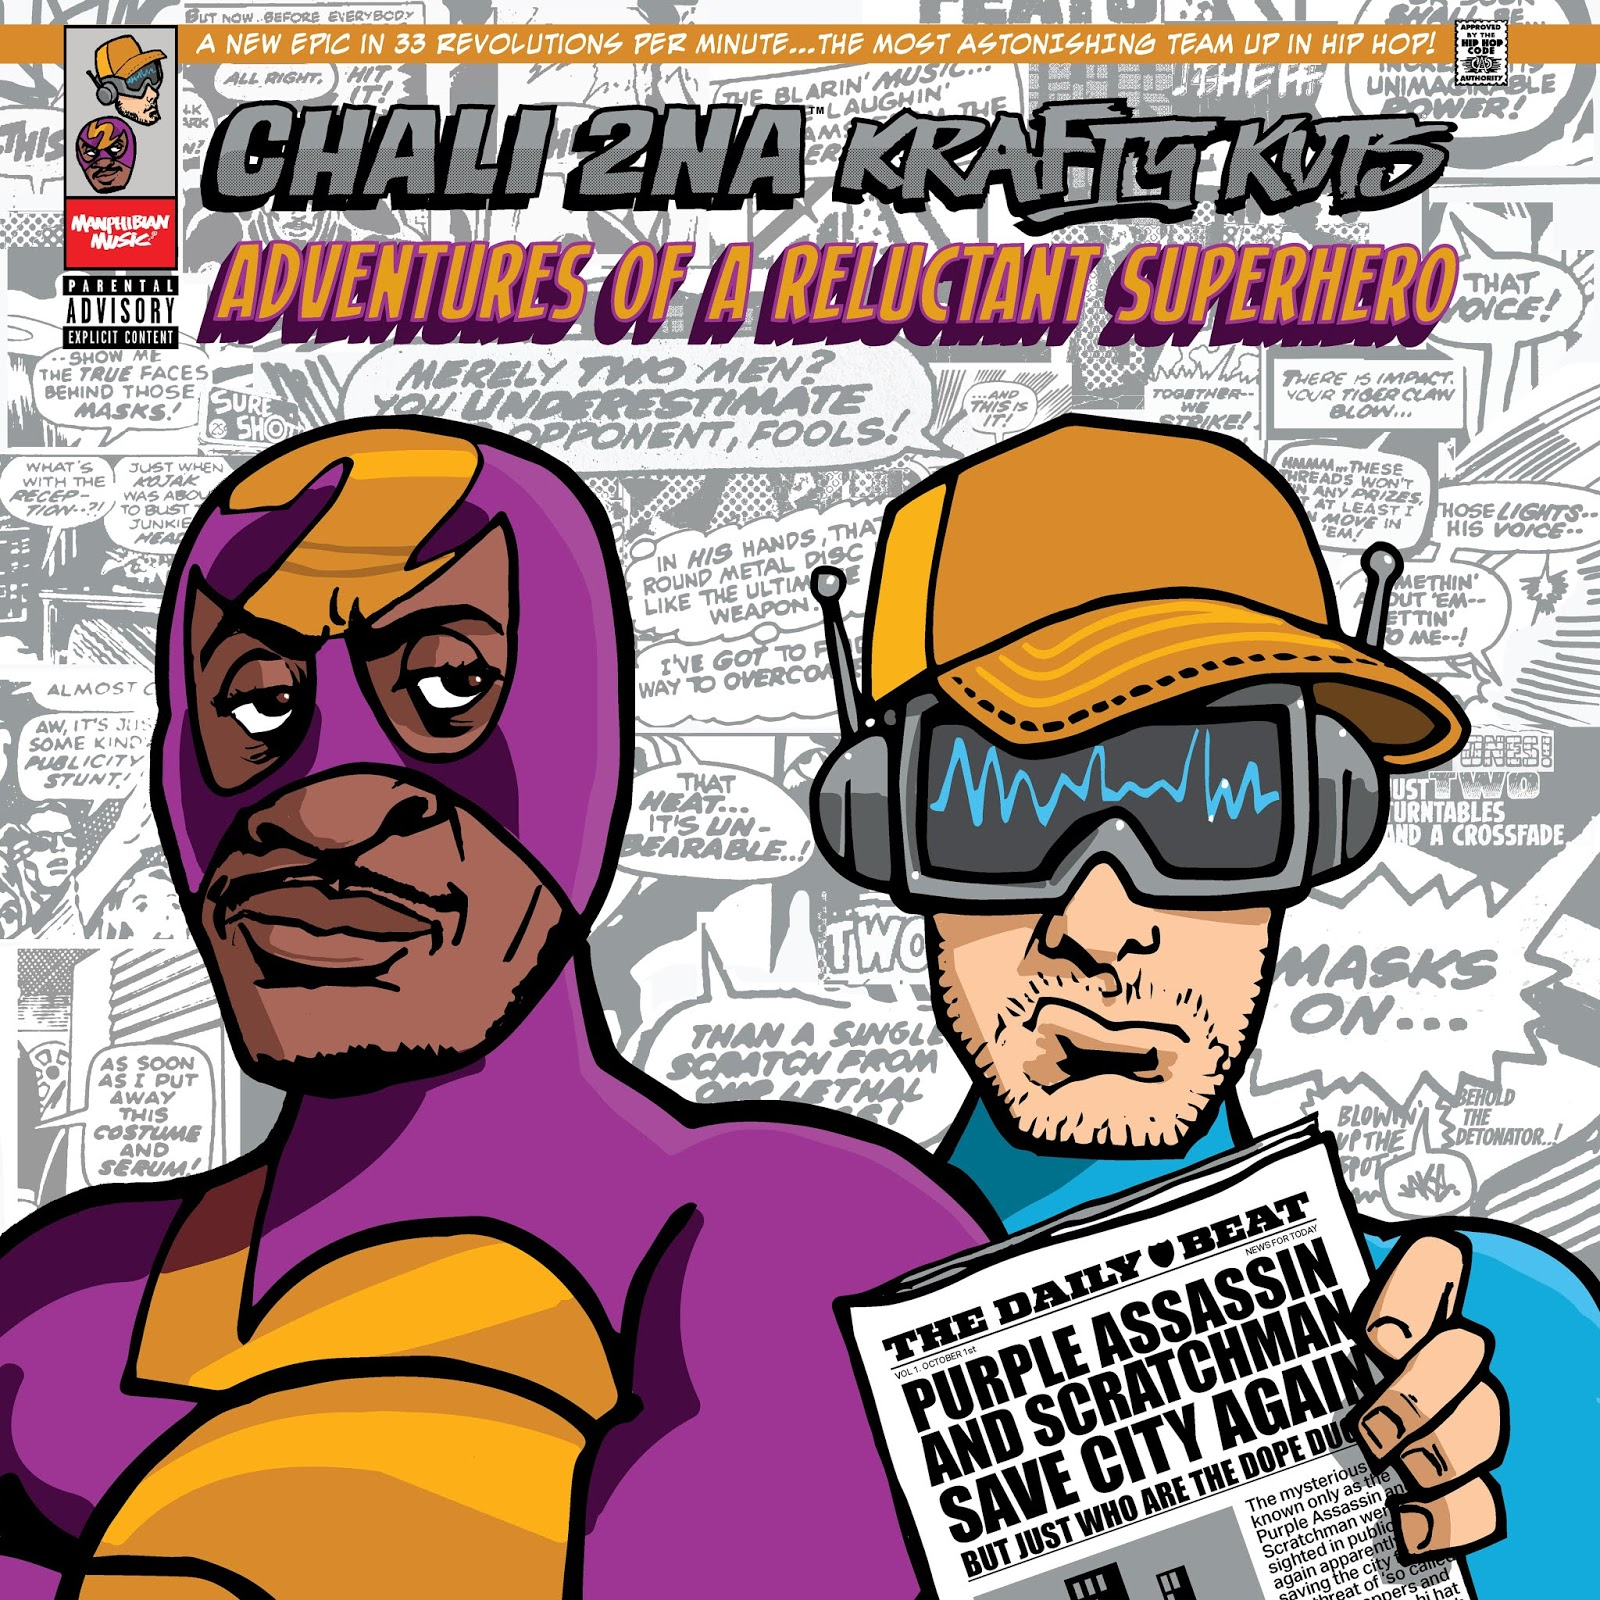 Chali 2na & Krafty Kuts: Adventures Of A Reluctant Superhero | Albumtipp und Full Album Stream